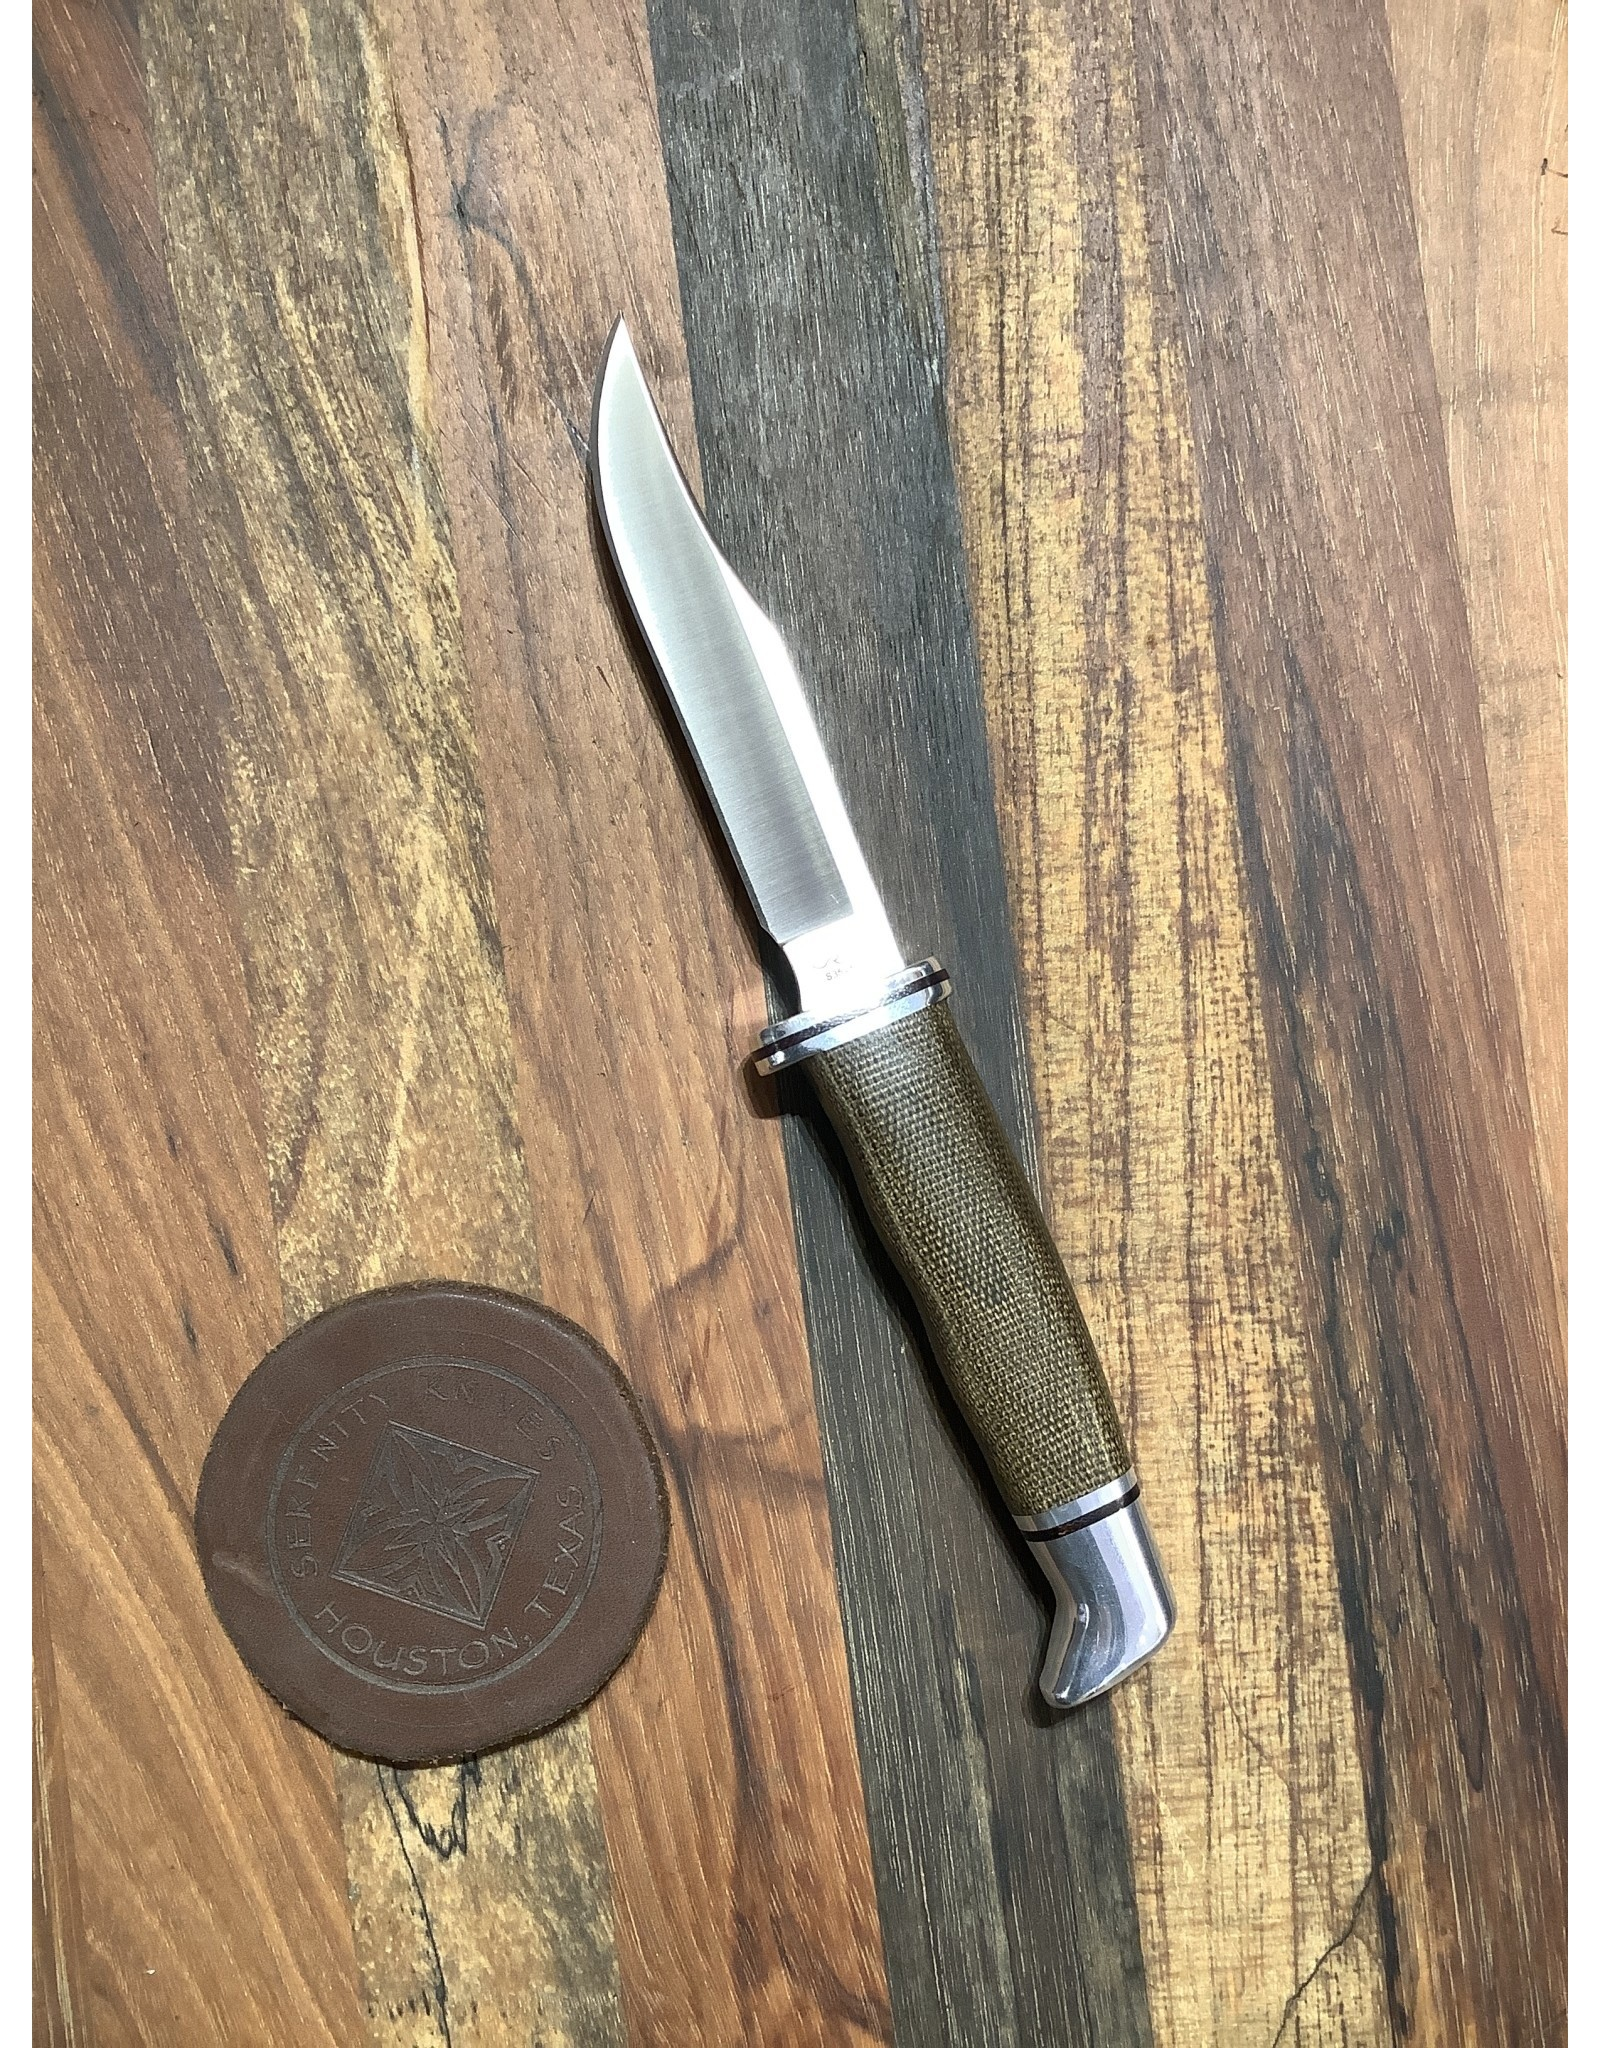 Buck BUCK Woodsman Pro with CPM-S35VN blade and Green Canvas Micarta handle